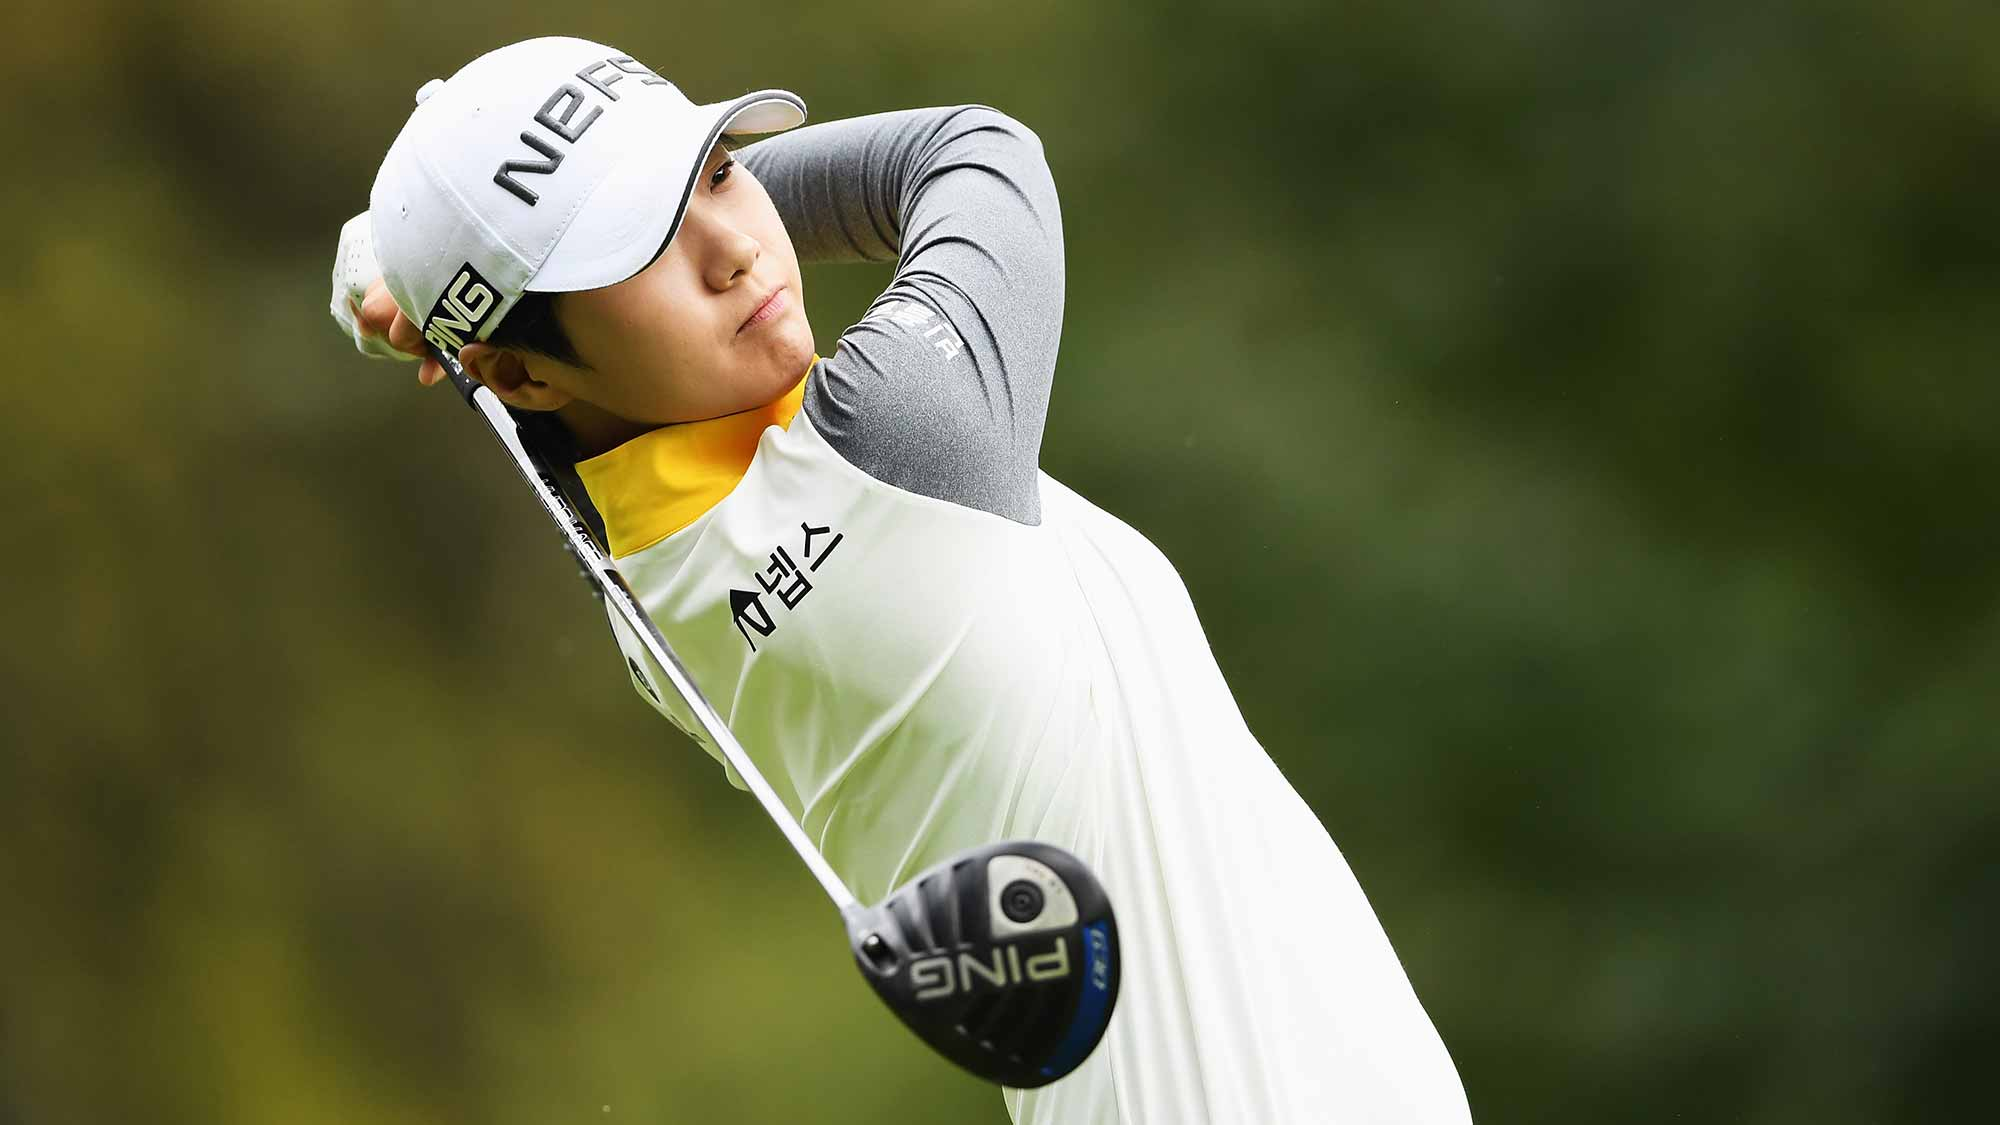 Sung Hyun Park of Korea plays a shot during the first round of The Evian Championship